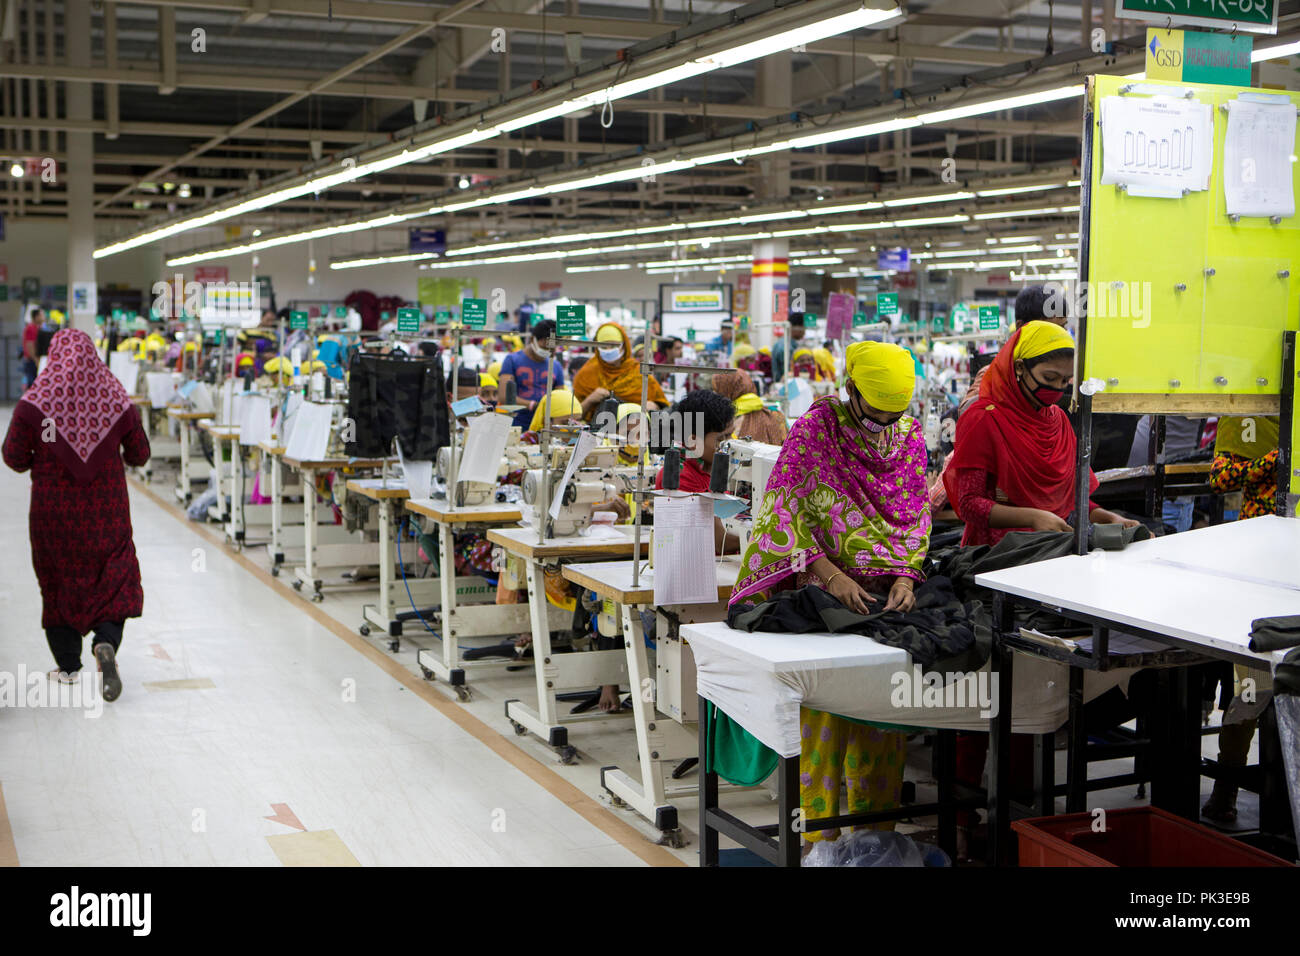 Garment workers at work on sewing machines inside a garment factory in Bangladesh. - Stock Image